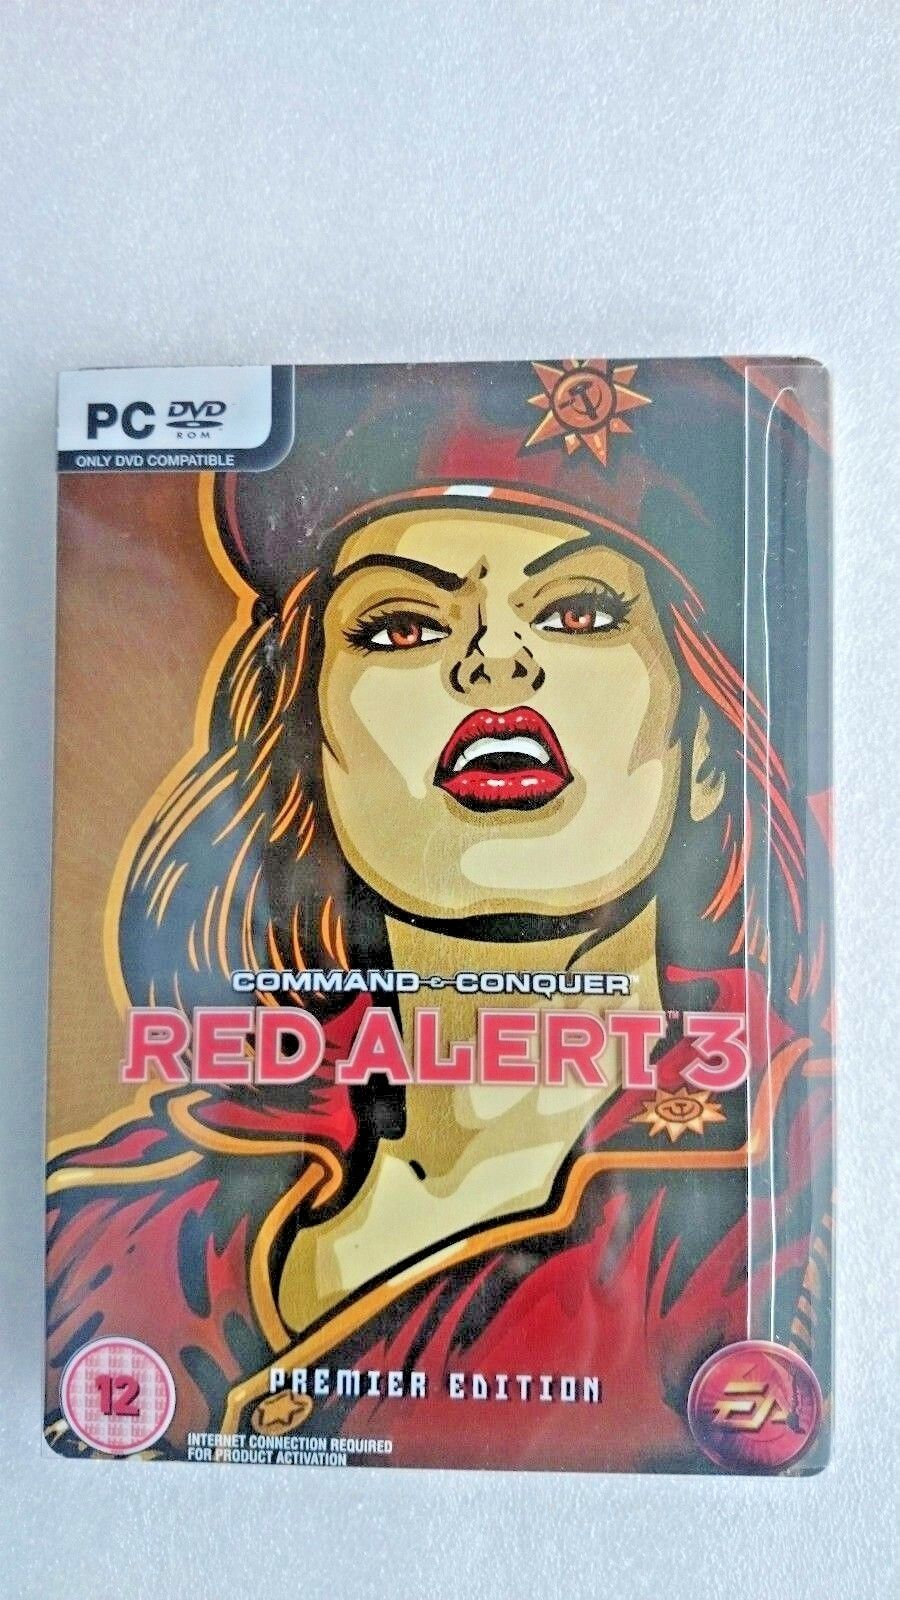 Command & Conquer: Red Alert 3 (PC: Windows, 2008) - Premier Metal Cover Edition